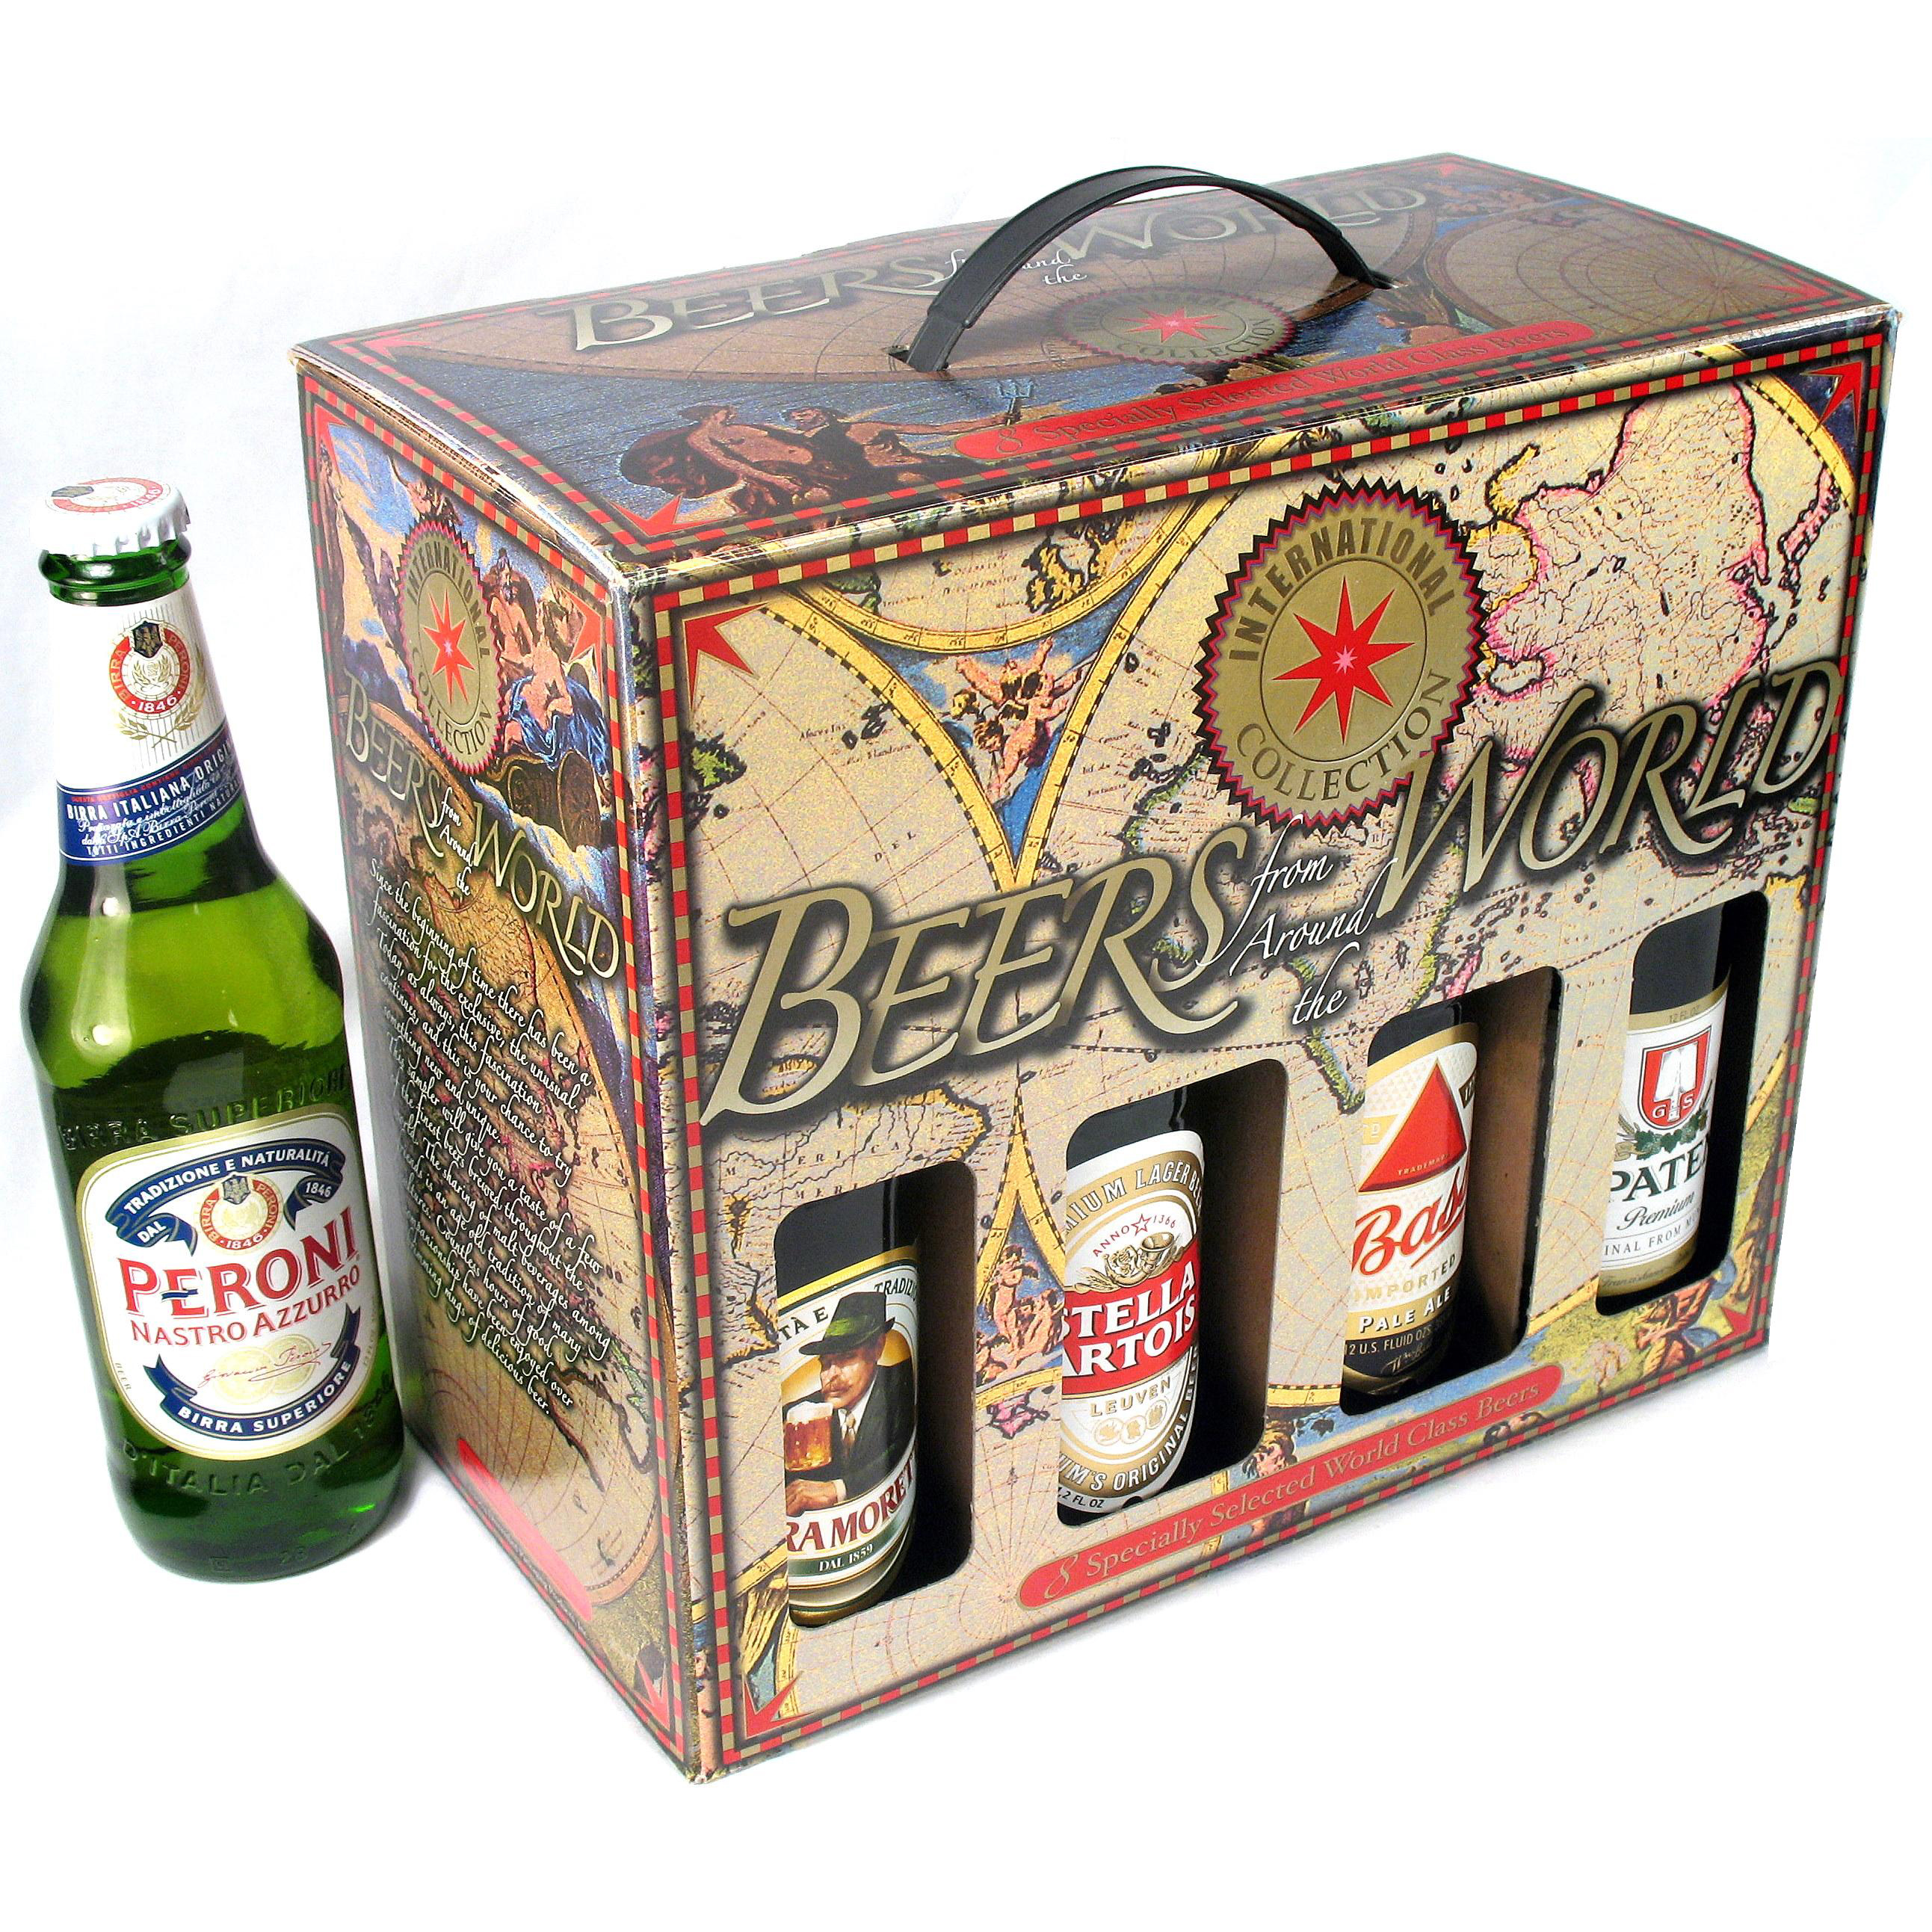 Craft beer gift box - 8 Bottle Beers Of The World Gift Box